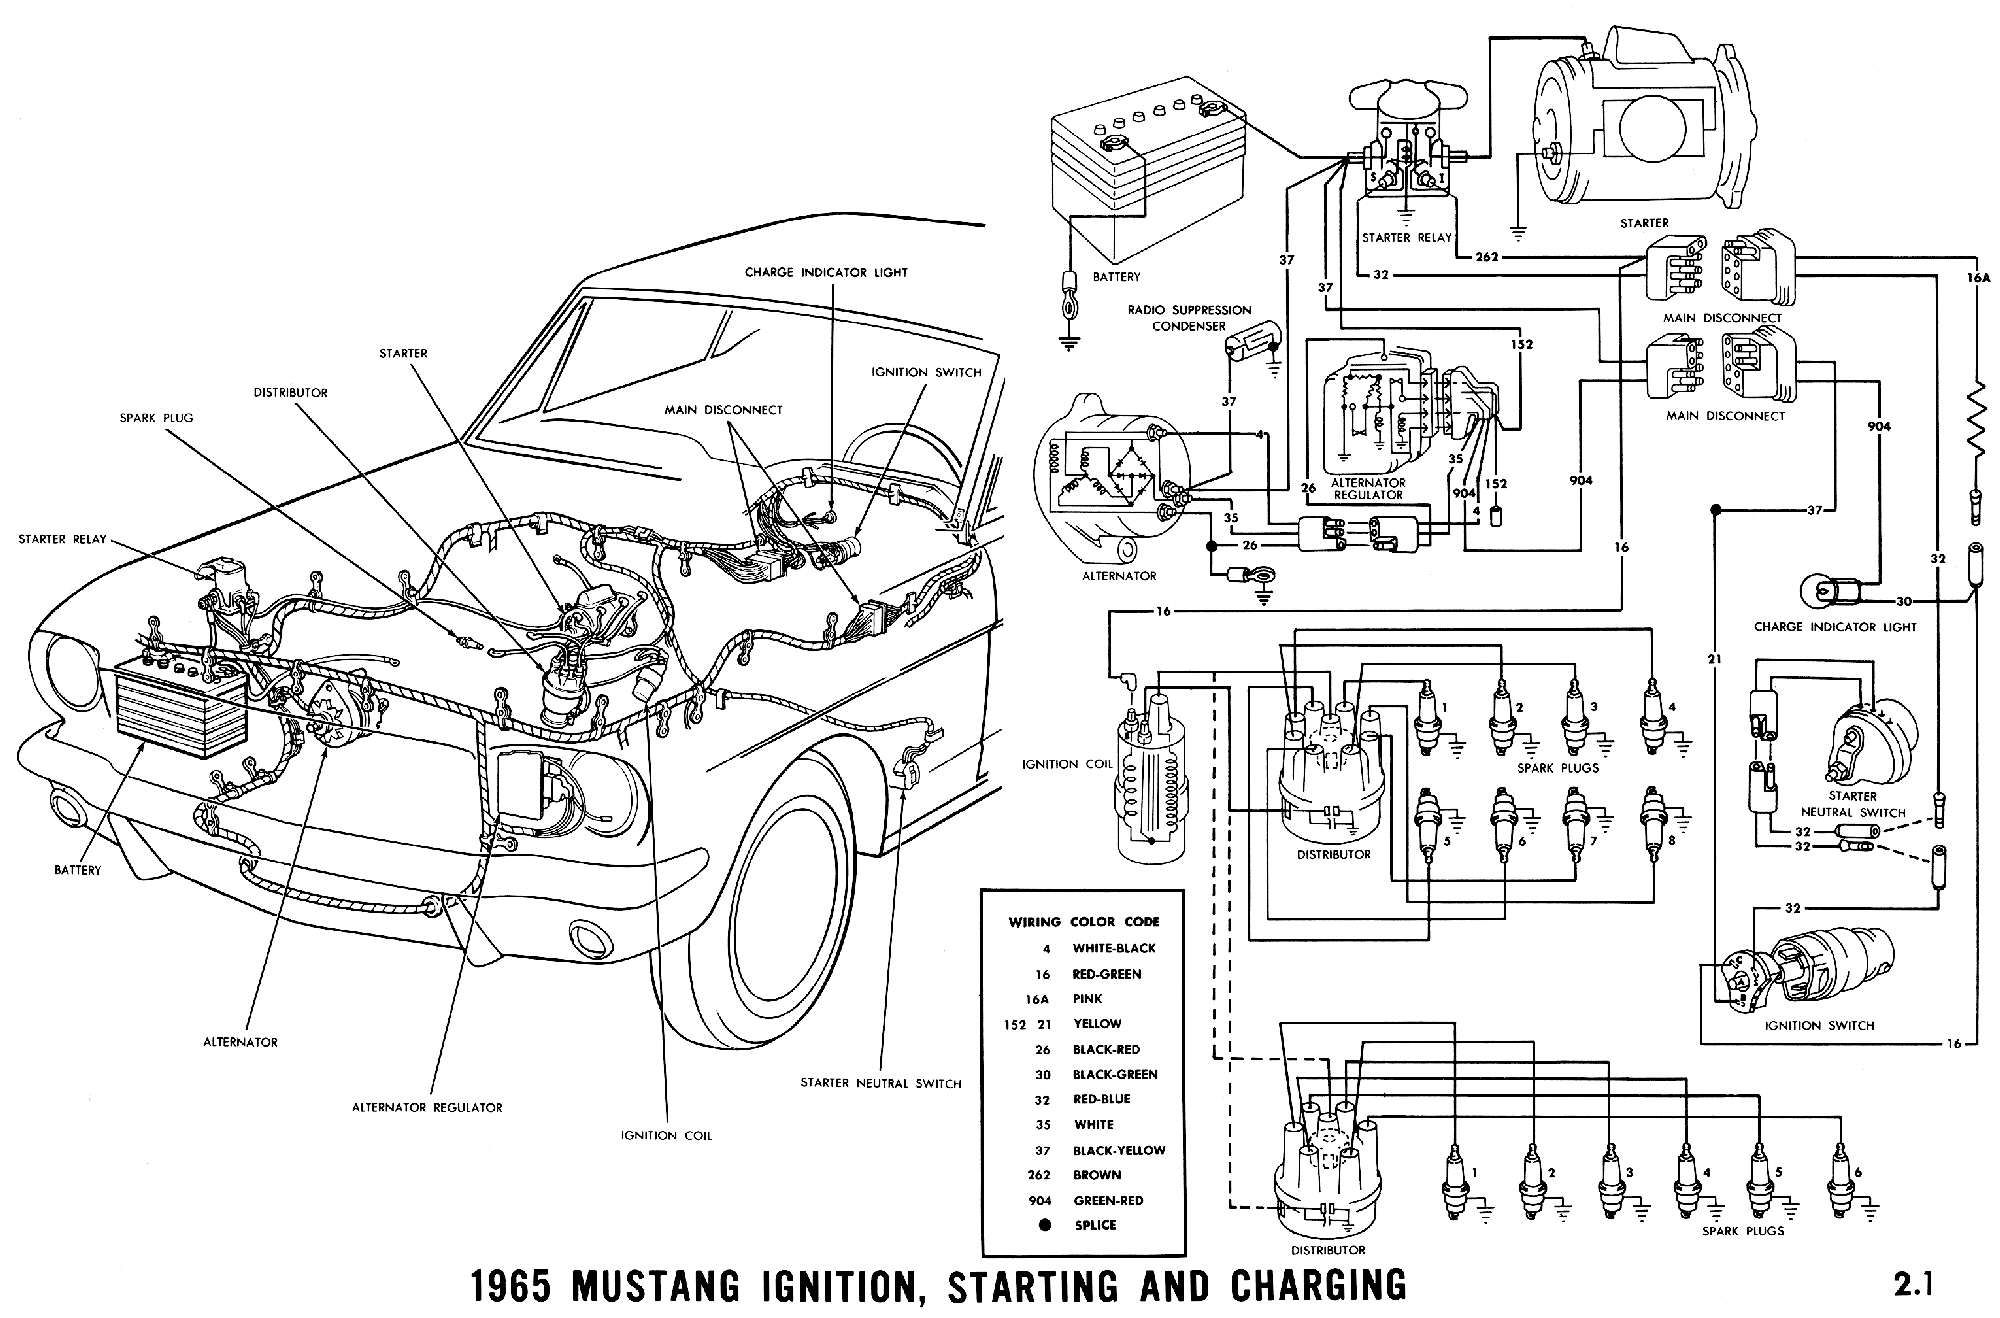 medium resolution of 1967 mustang wiring harness wiring diagram operations 1967 mustang wiring harness diagram 1967 mustang wiring harness